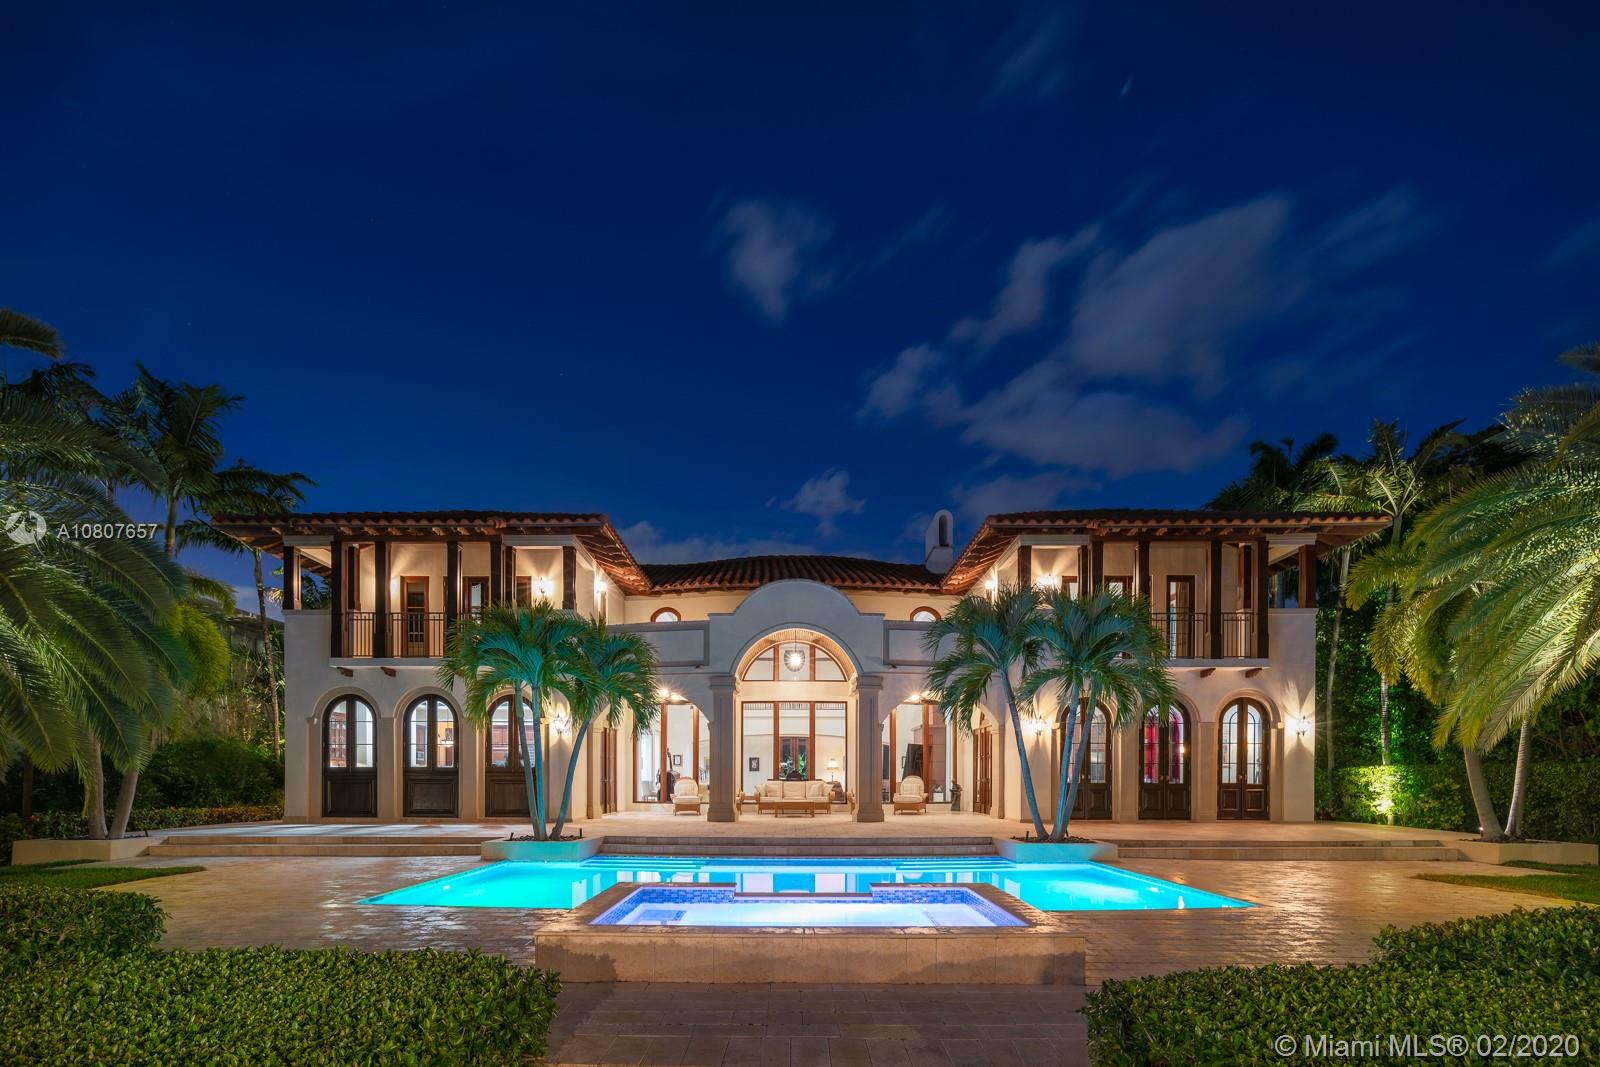 Combining an Italian villa with modern sophistication, this south-facing waterfront masterpiece is the premier setting for entertaining. The heart of the home is the great room featuring a grand marble entrance, mahogany wood details, vault and arched ceilings, & vast natural flowing light. A home of fine taste and opulent design, the floor to ceiling windows greet you with stunning 117 feet of waterfrontage & panoramic views of Indian Creek Golf Course and open waters. This 9,251 sf, 5BR/5+3BA property boasts 2 master suites, gourmet kitchen, formal dining room, elevator, ample storage throughout and an expansive patio area with a brand new private boat dock, remodeled pool, raised sea wall & outdoor generator. This residence offers some of the most breathtaking views in all of bay harbor